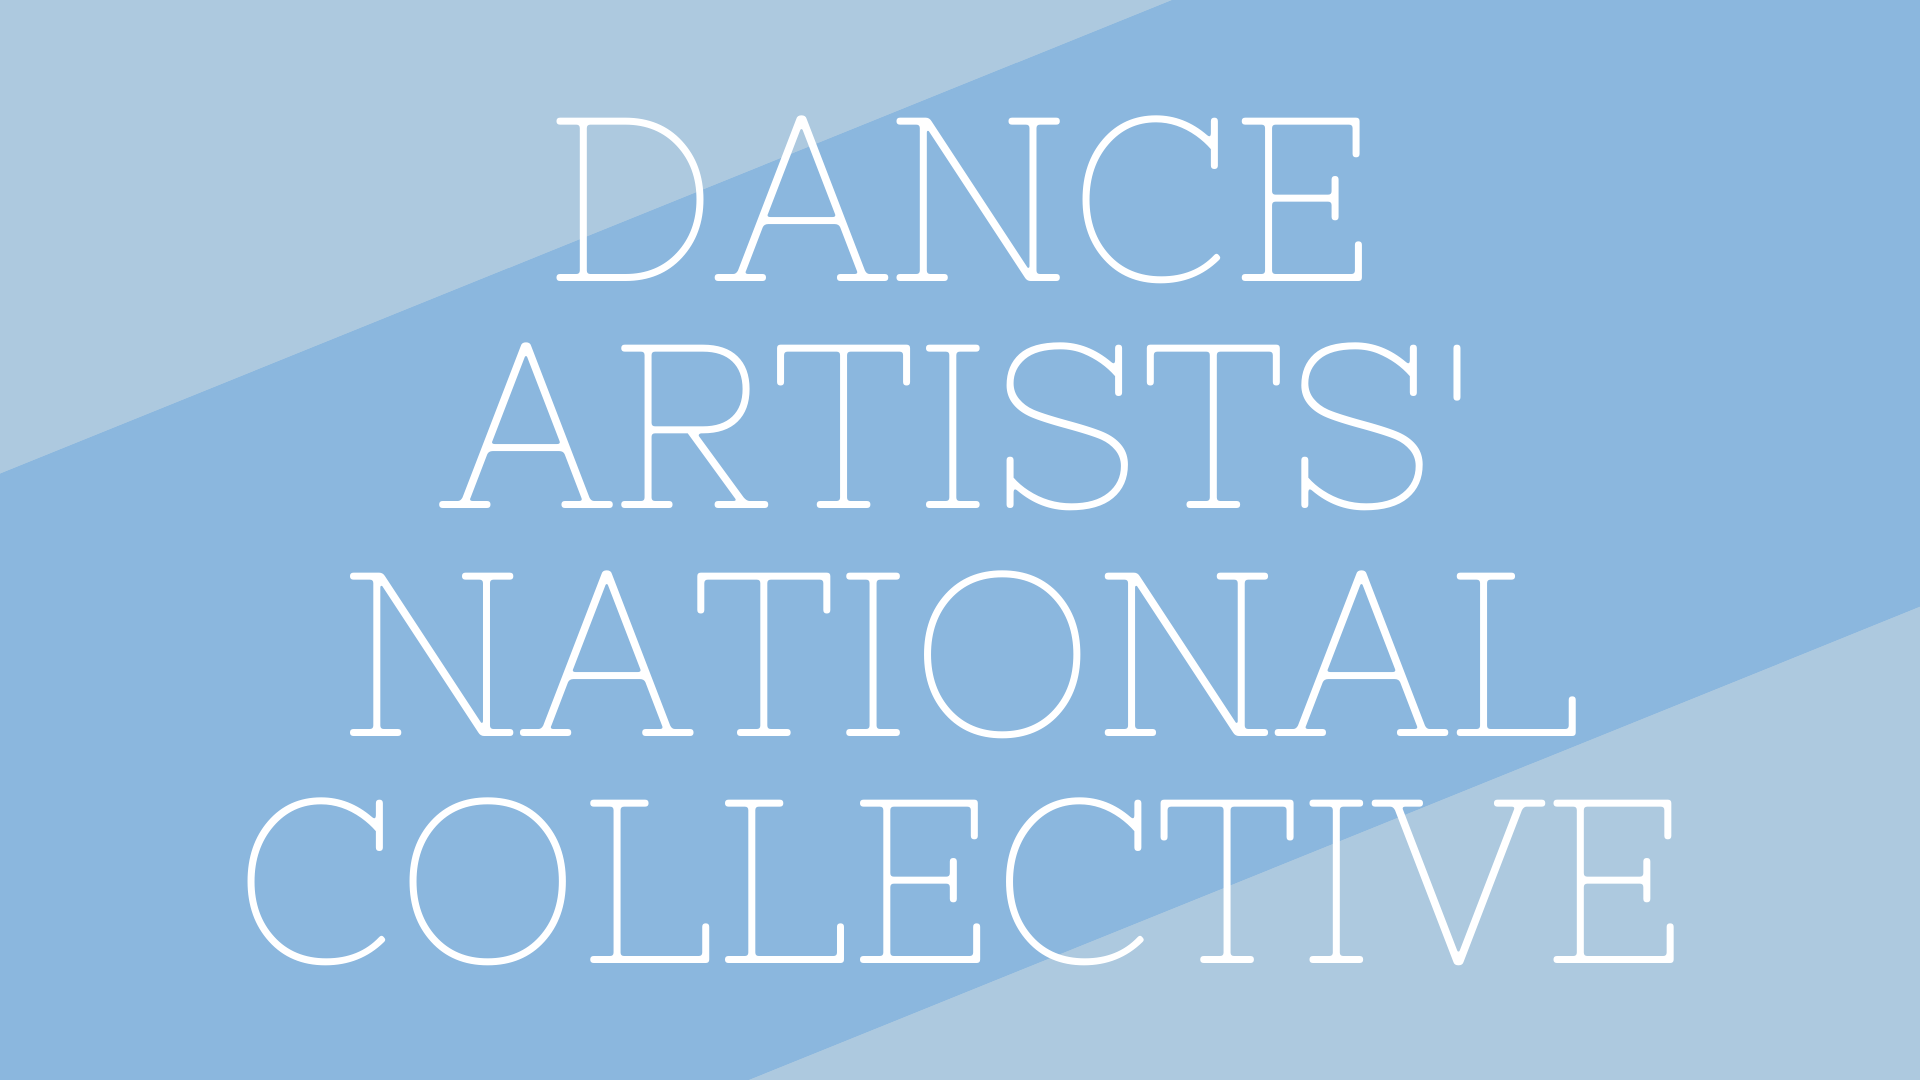 Dance Artists' National Collective